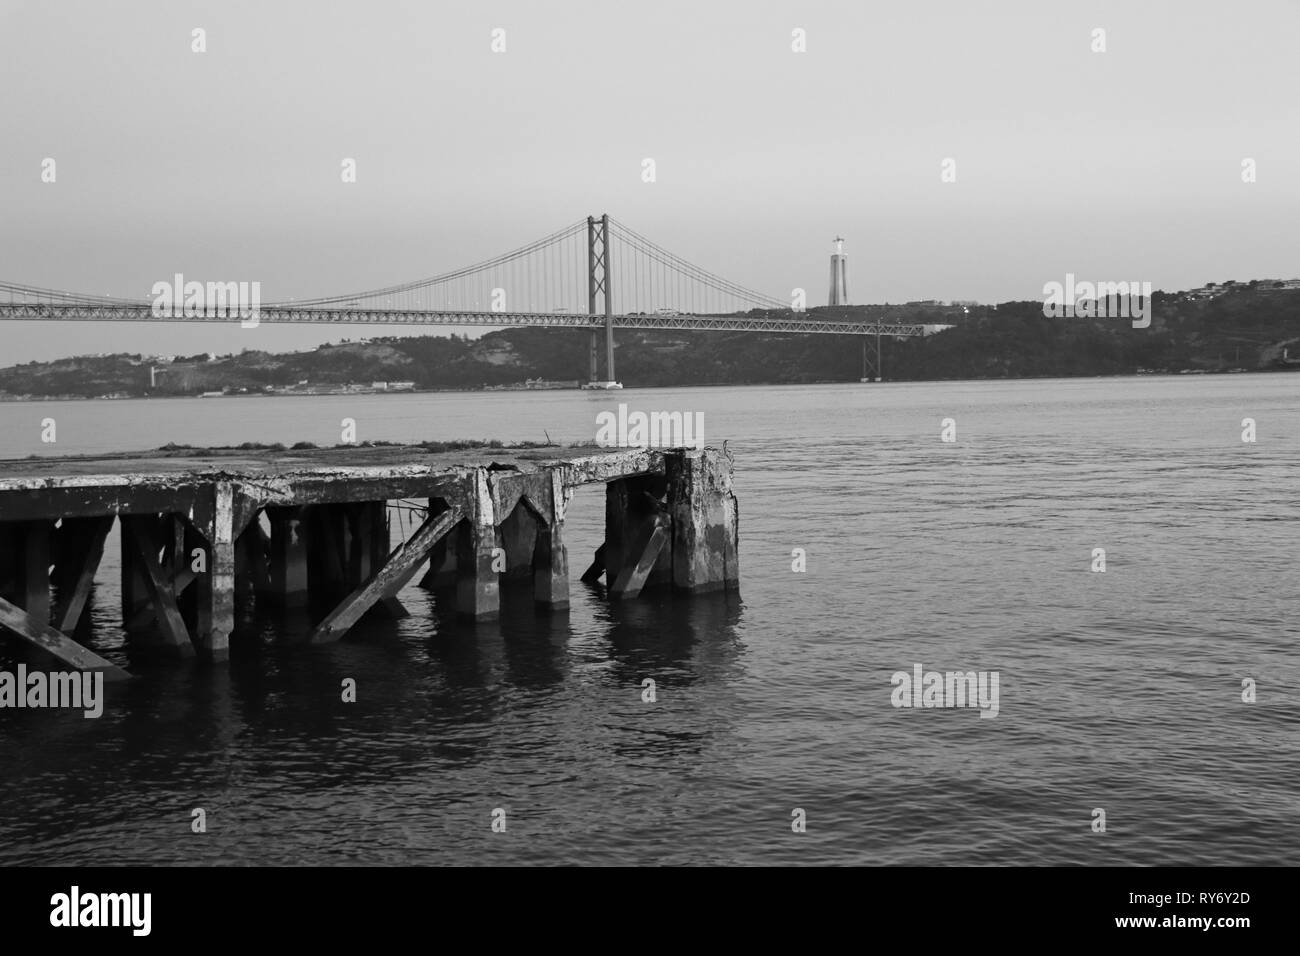 Pier in Lisbon with the 25 of April bridge in background - Stock Image